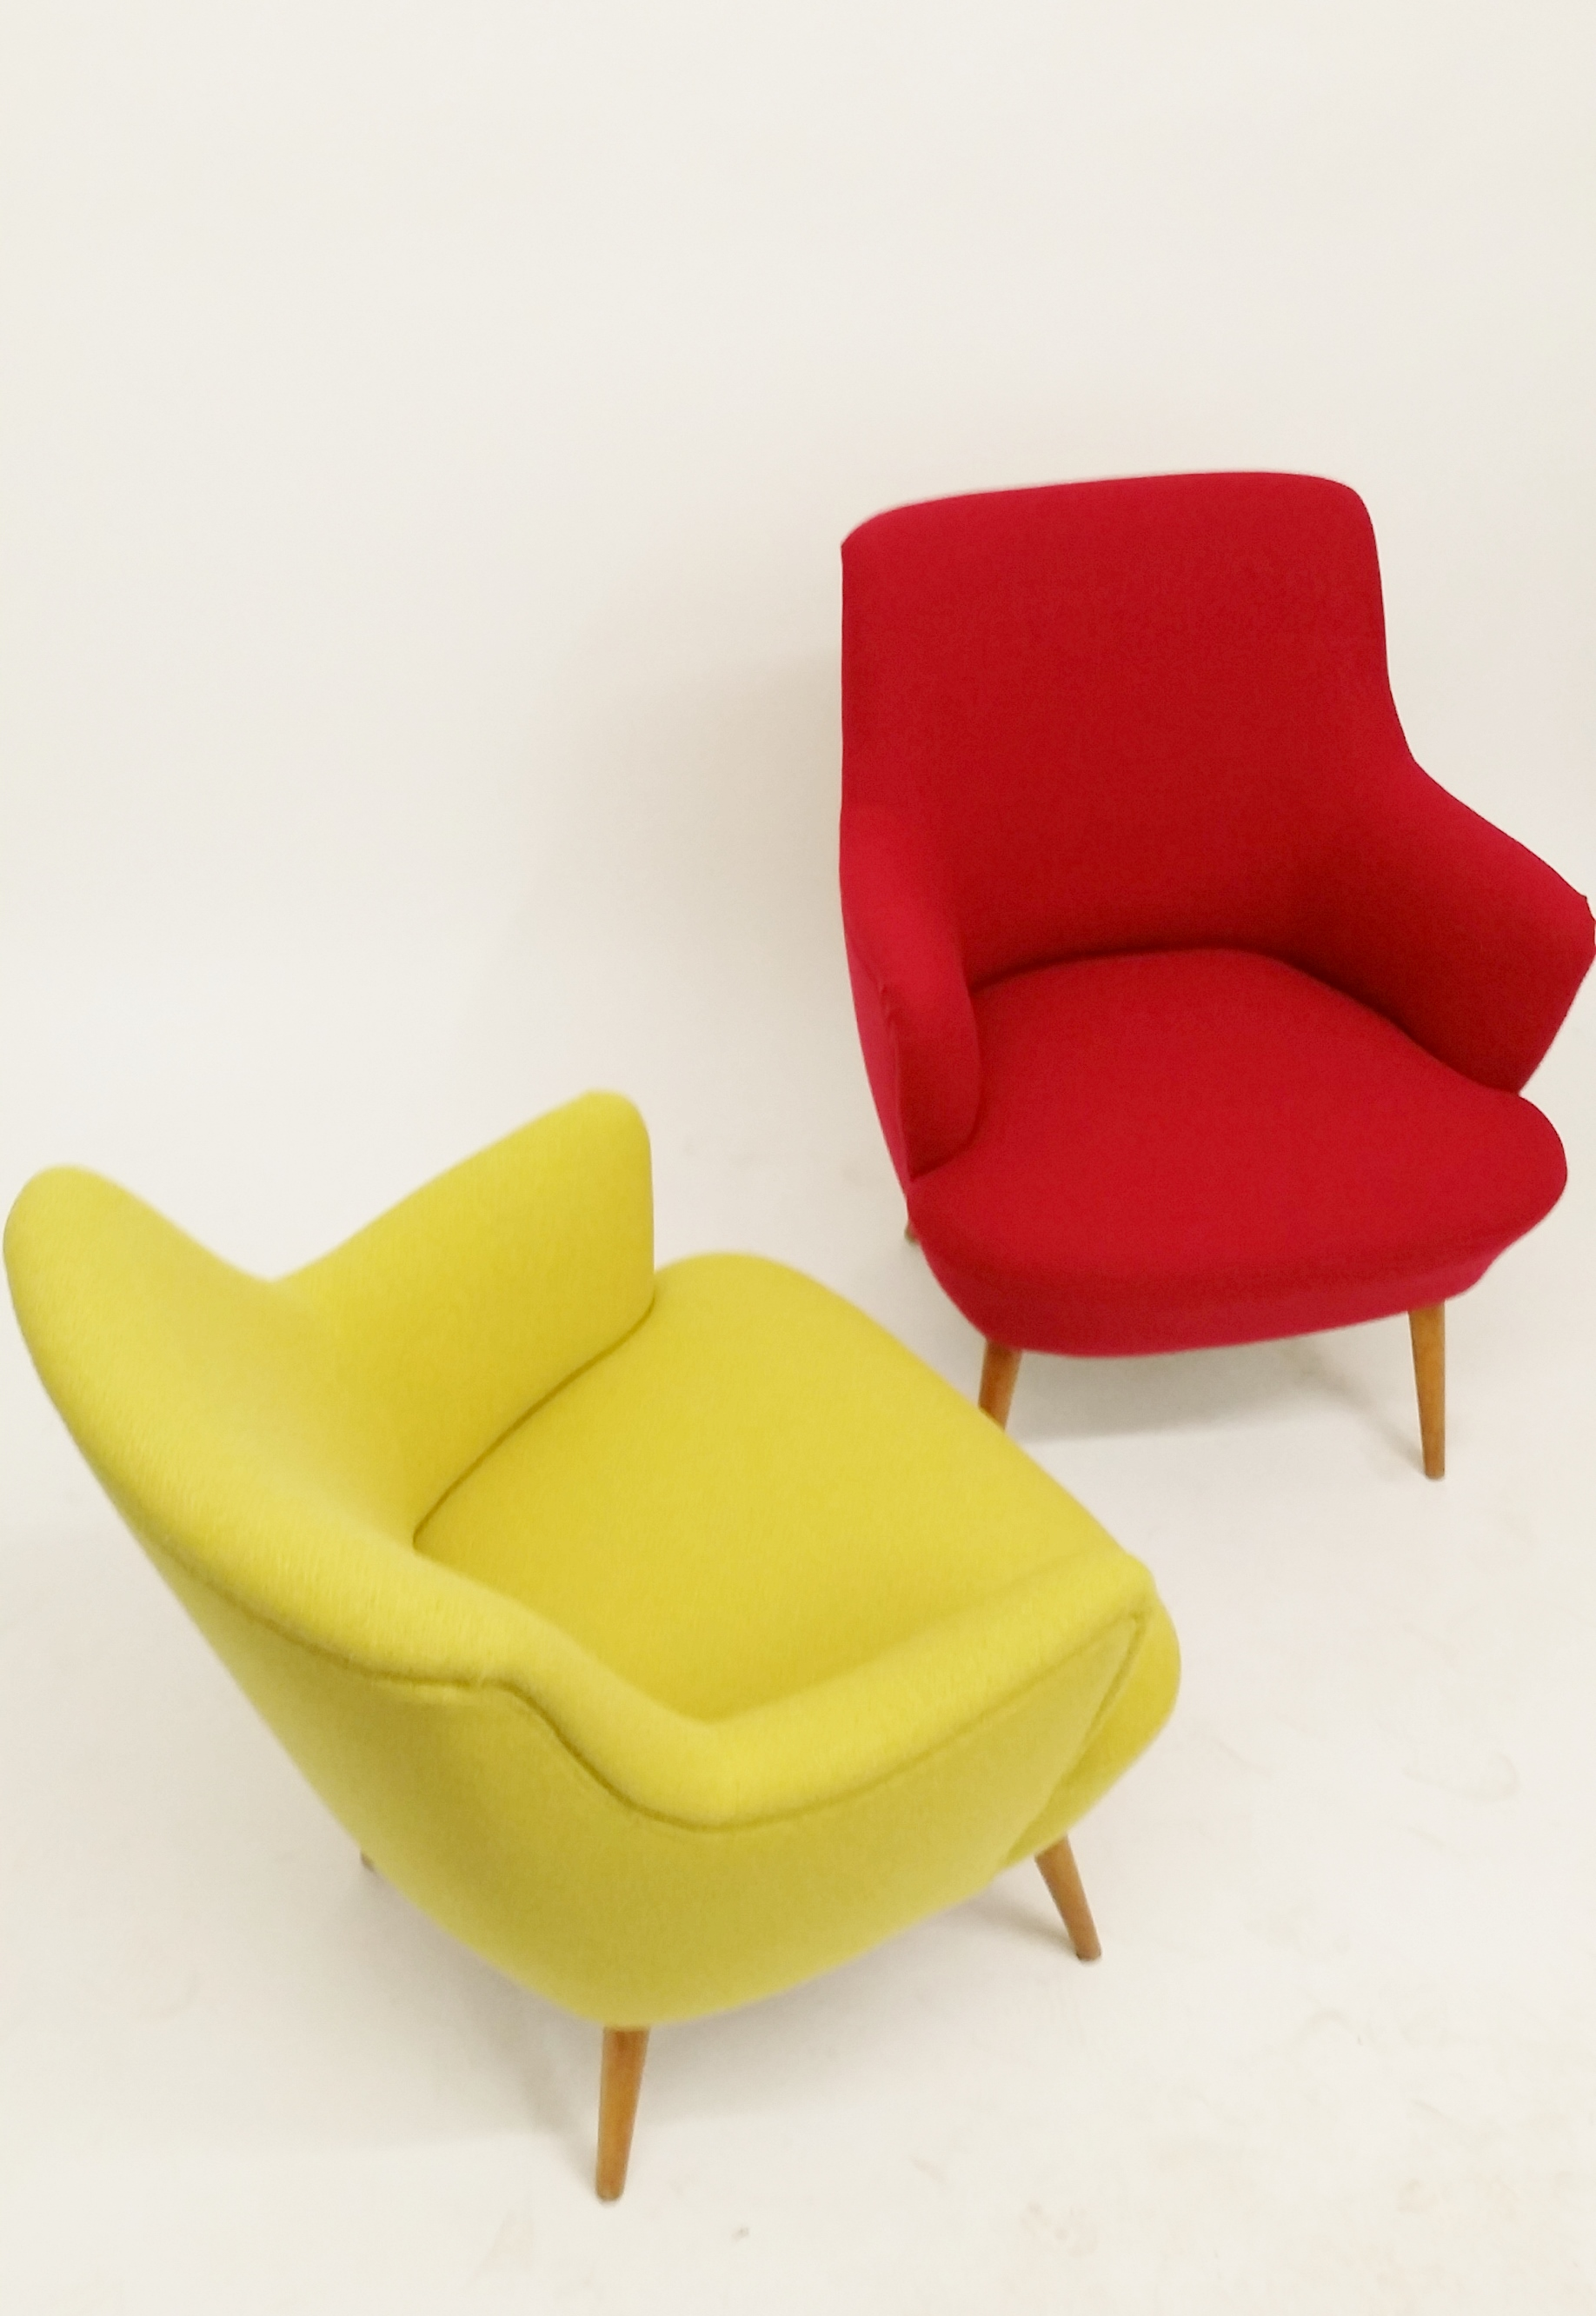 Fifties cocktail chairs